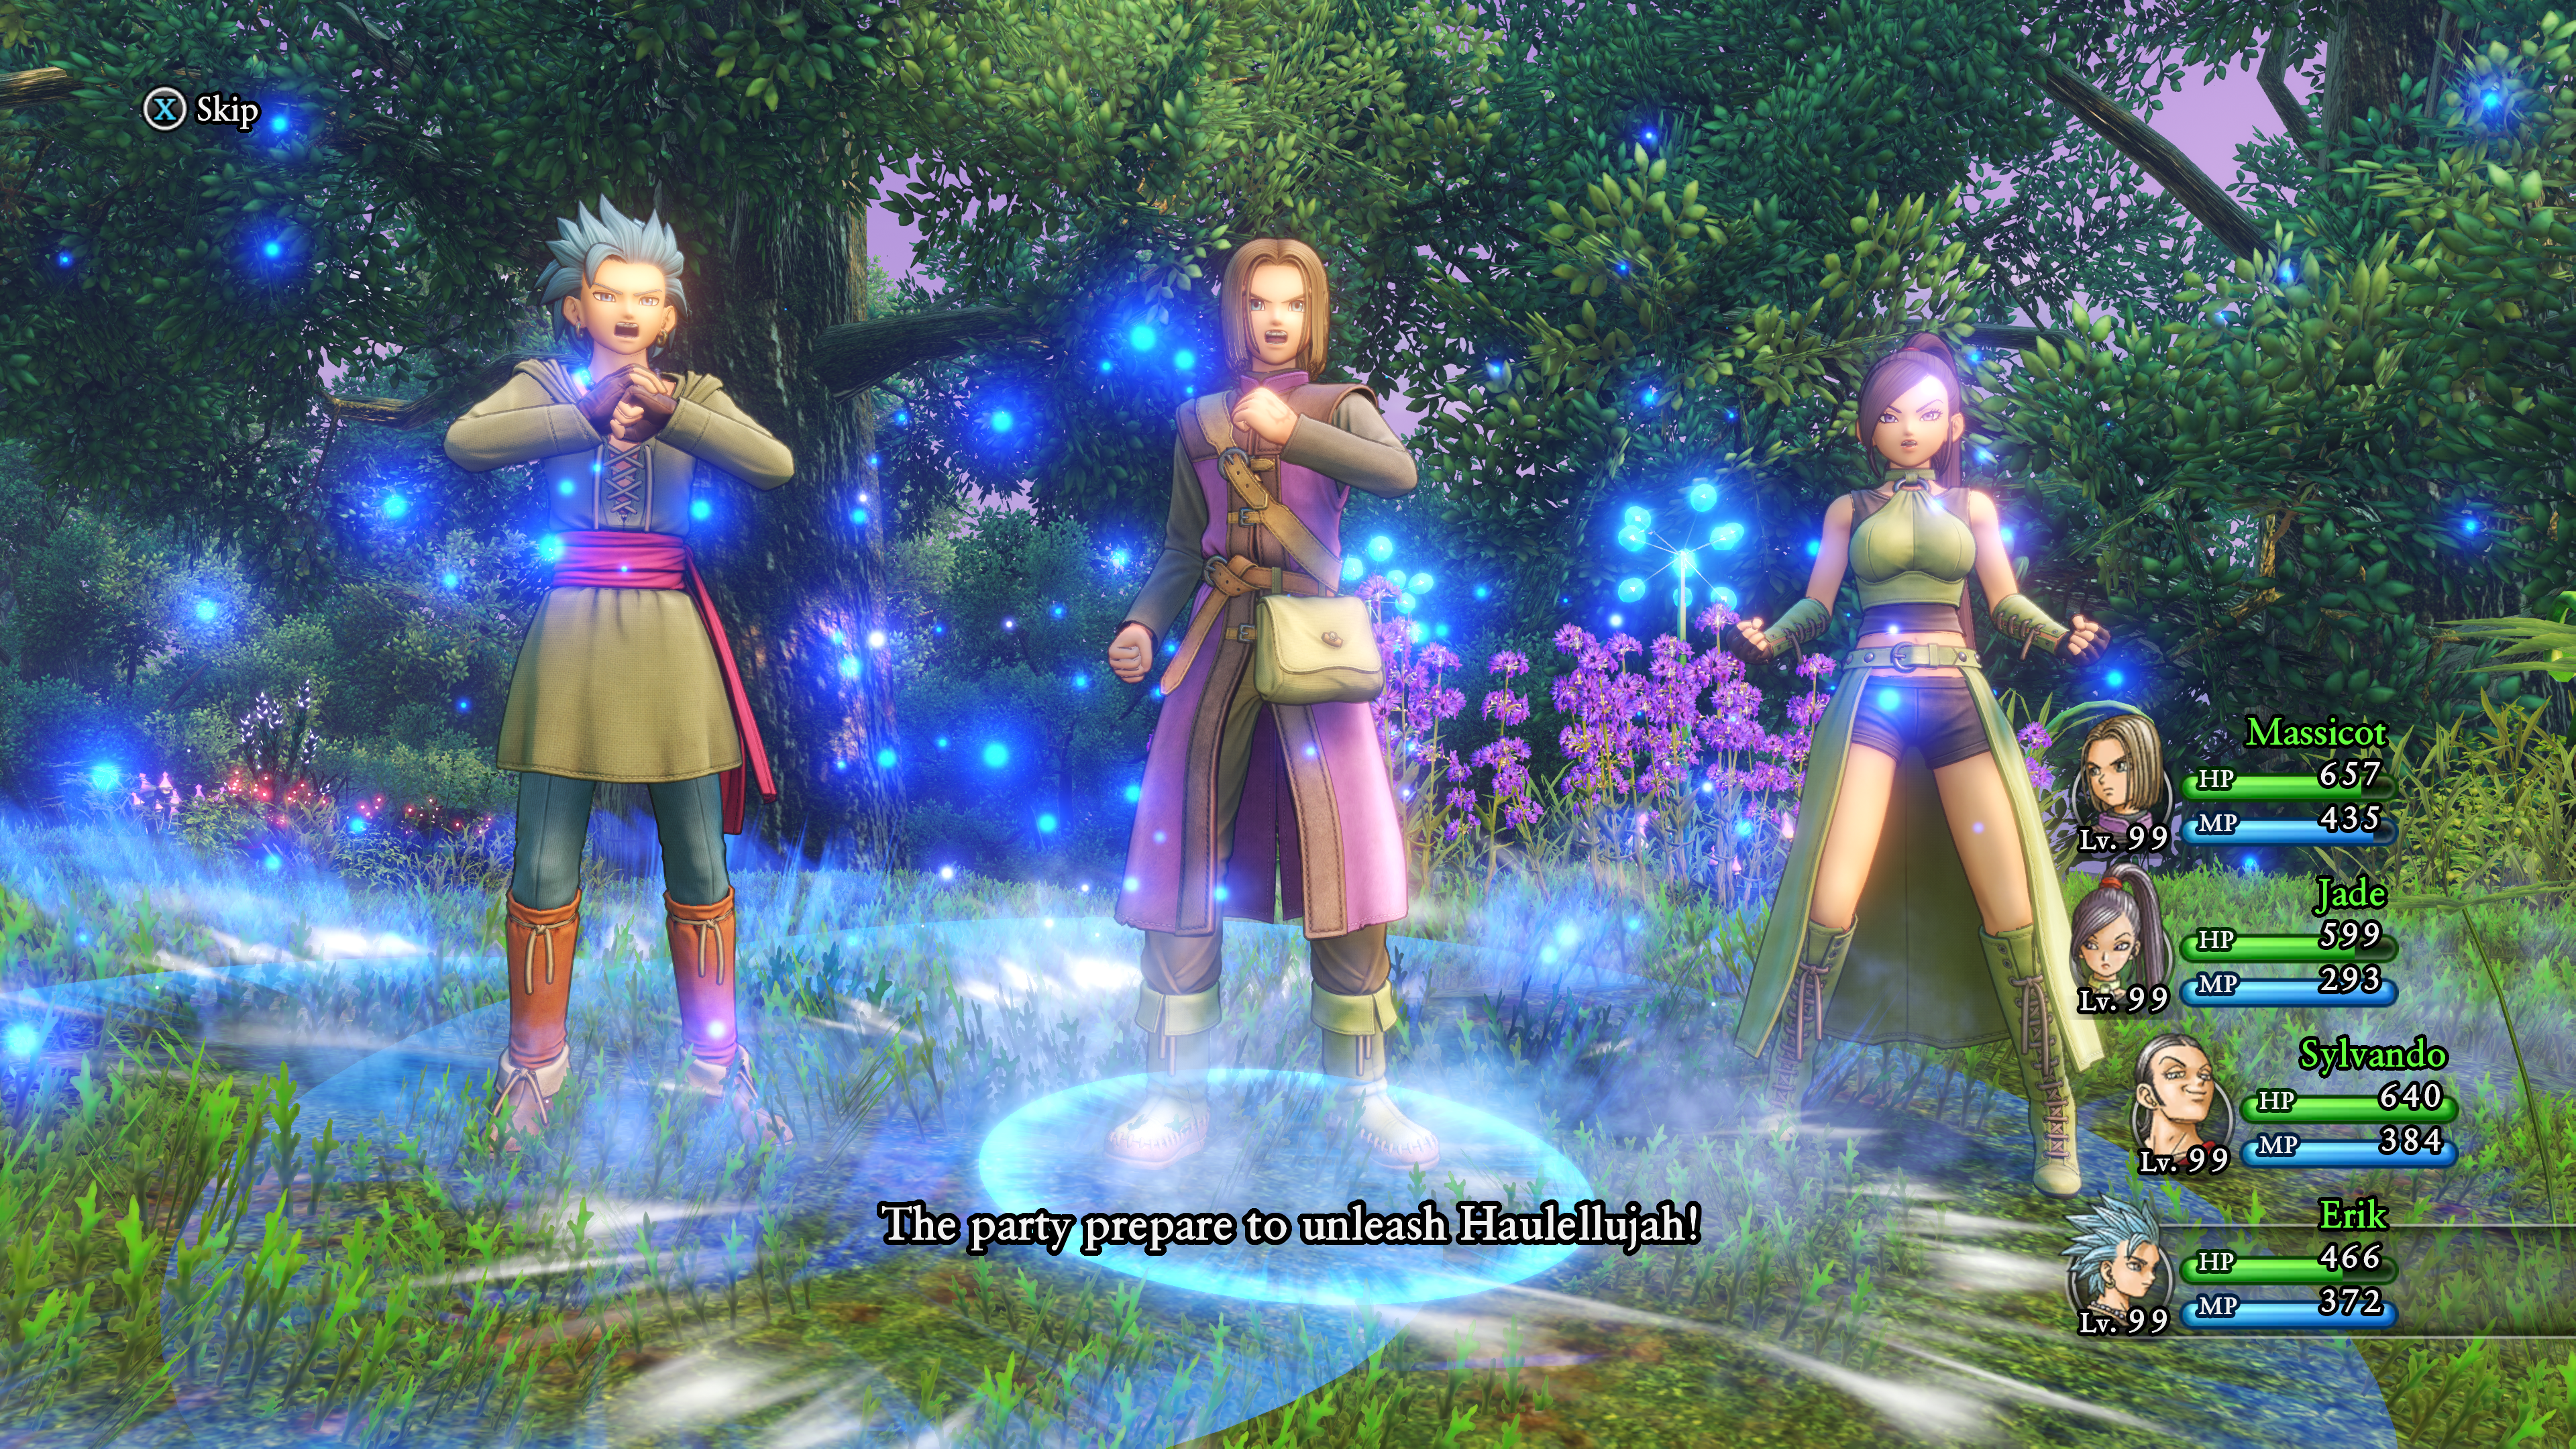 Dragon Quest XI Gold and EXP Guide: How to gain gold and experience